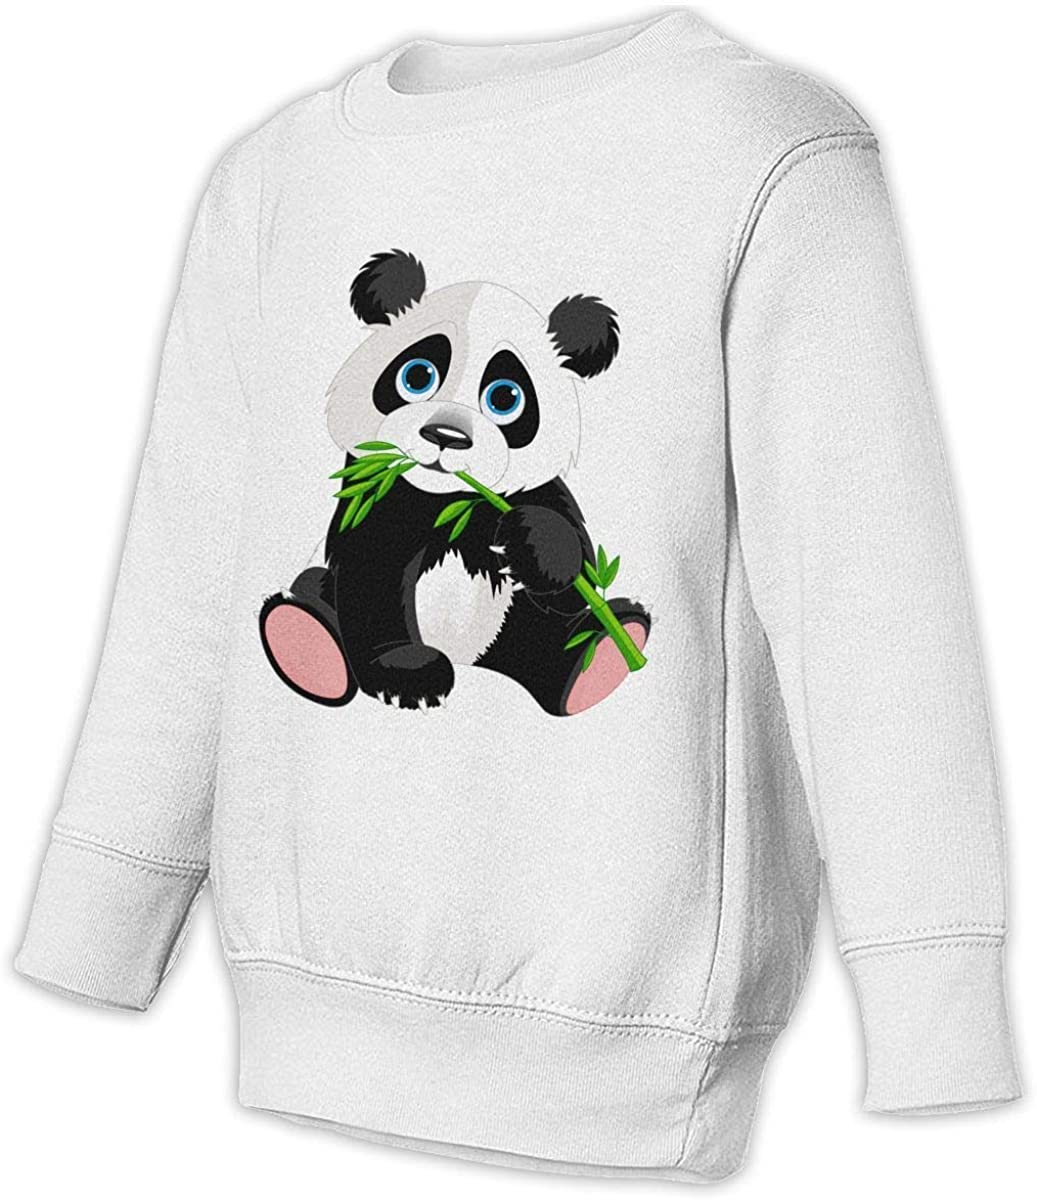 Panda Eat Bamboo Boys Girls Pullover Sweaters Crewneck Sweatshirts Clothes for 2-6 Years Old Children